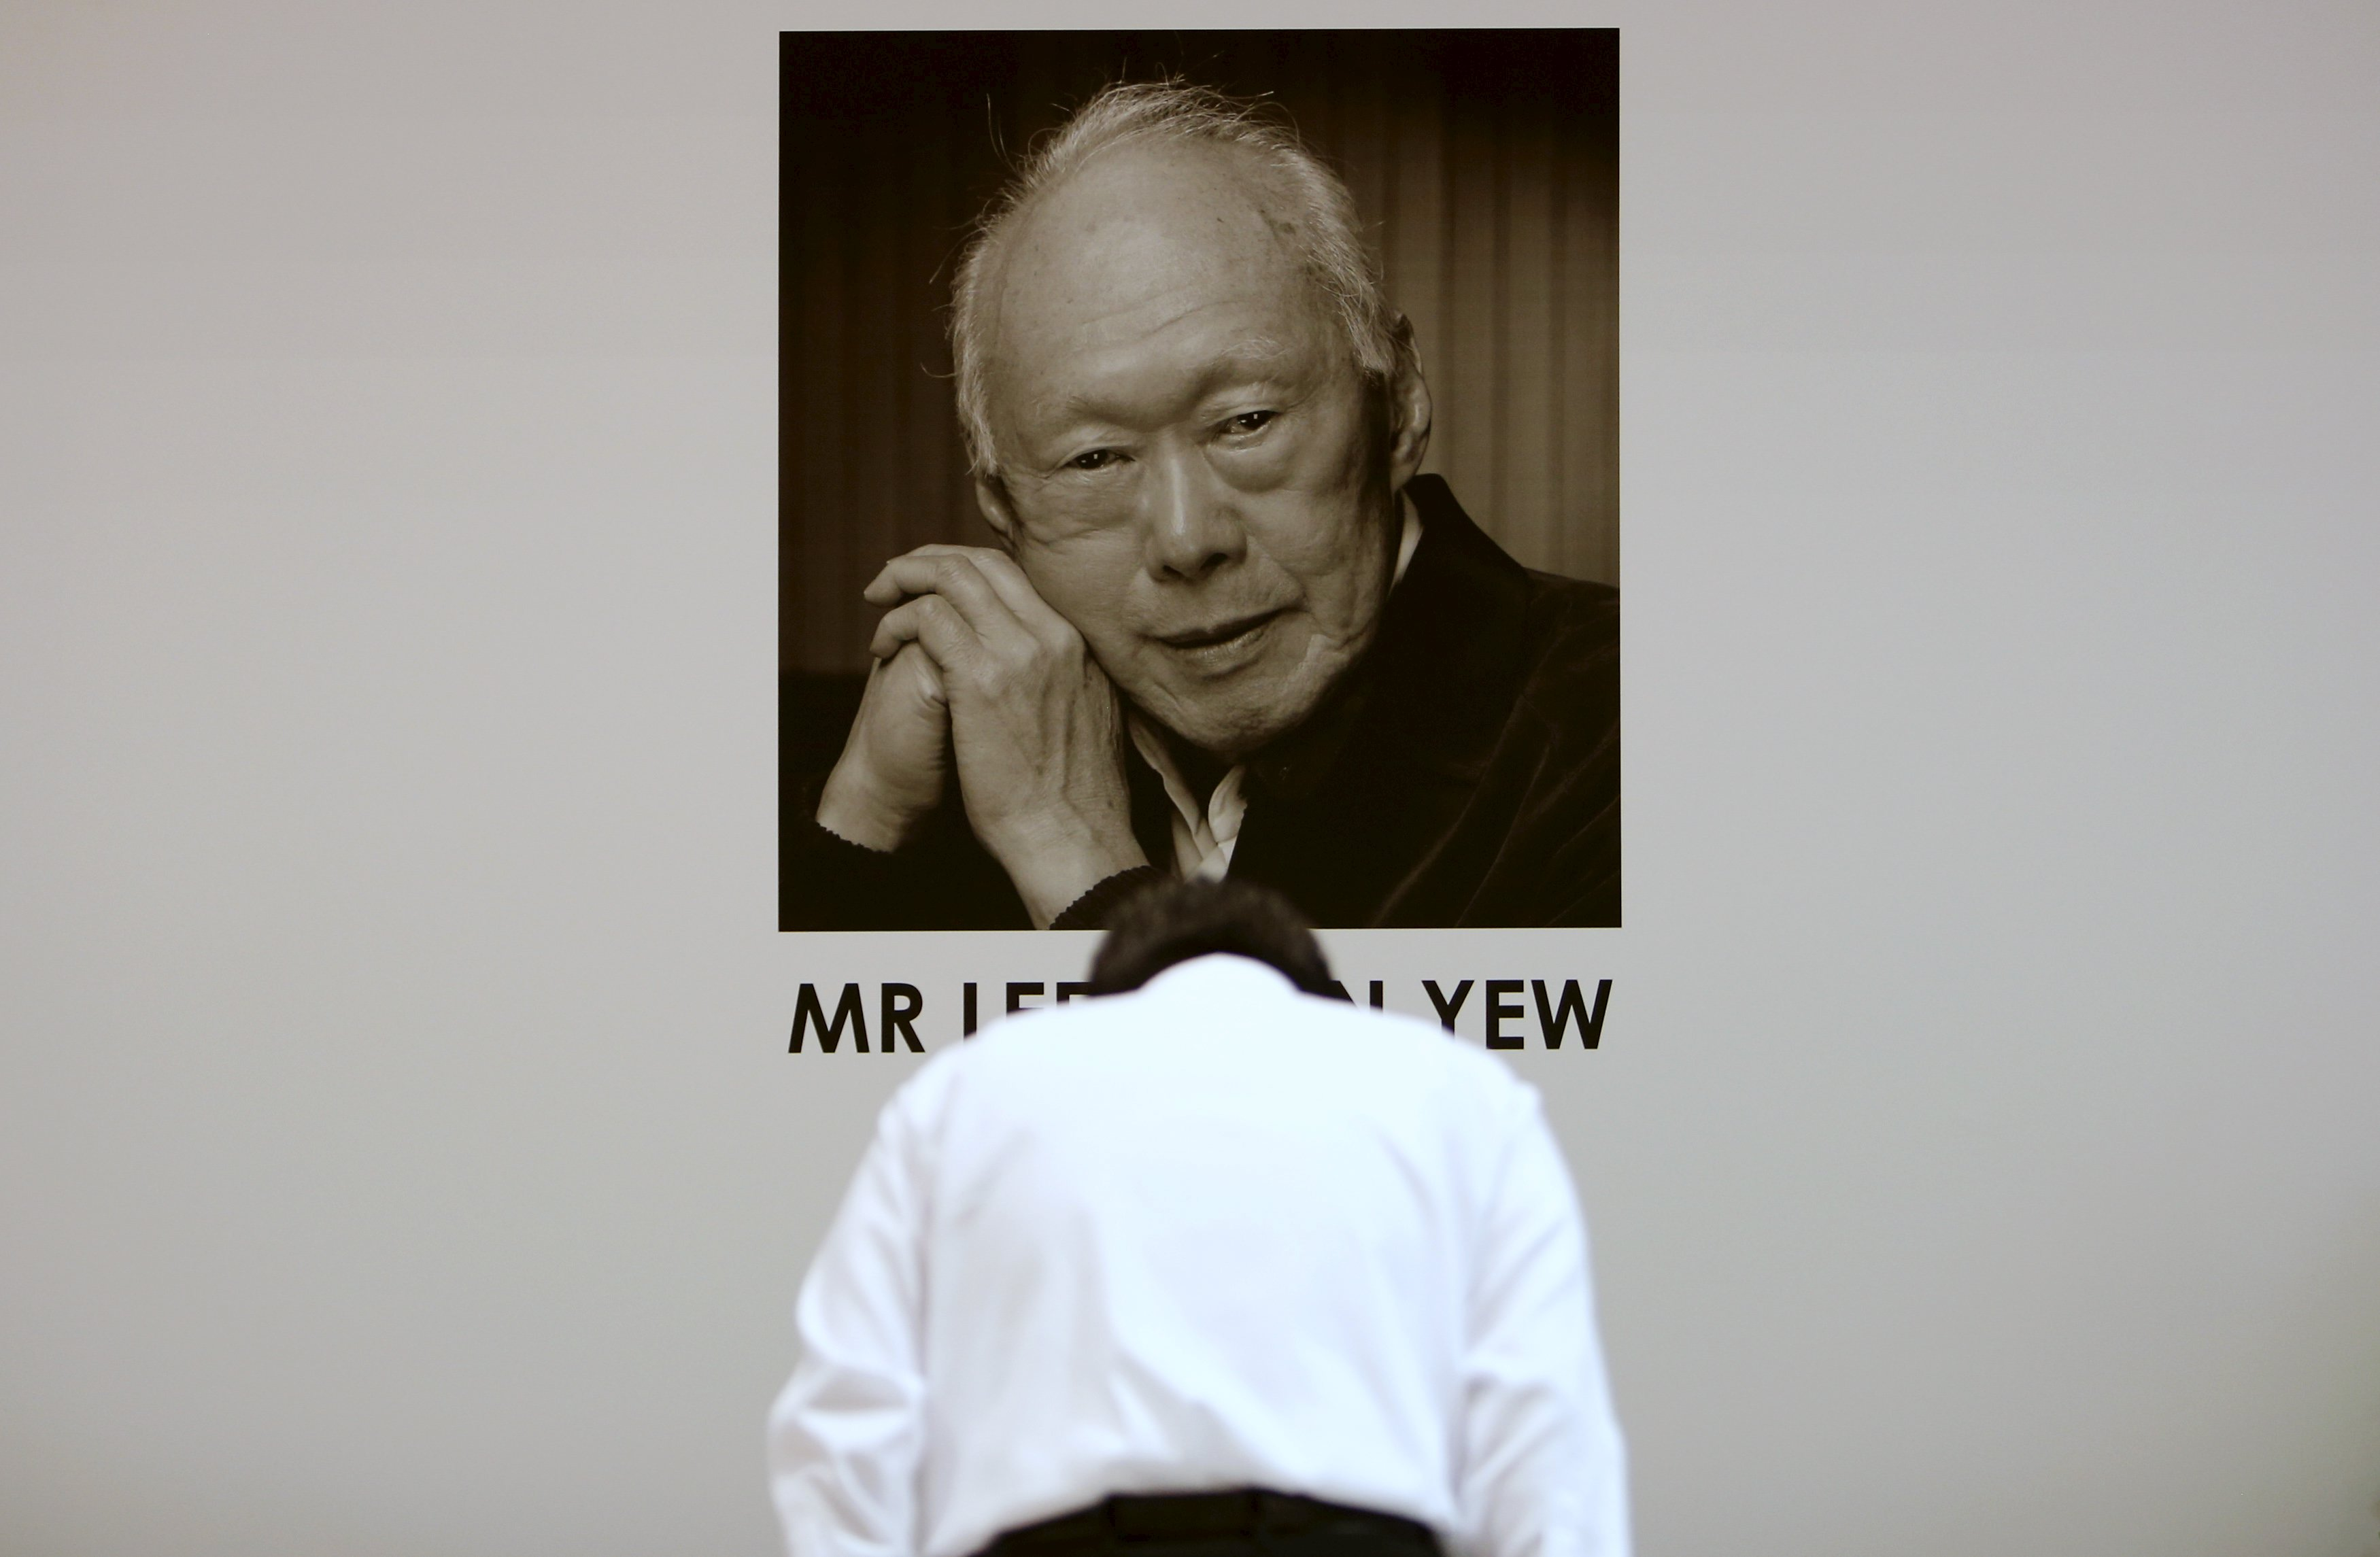 All roads lead to Singapore: Asians study Lee Kuan Yew's mantra